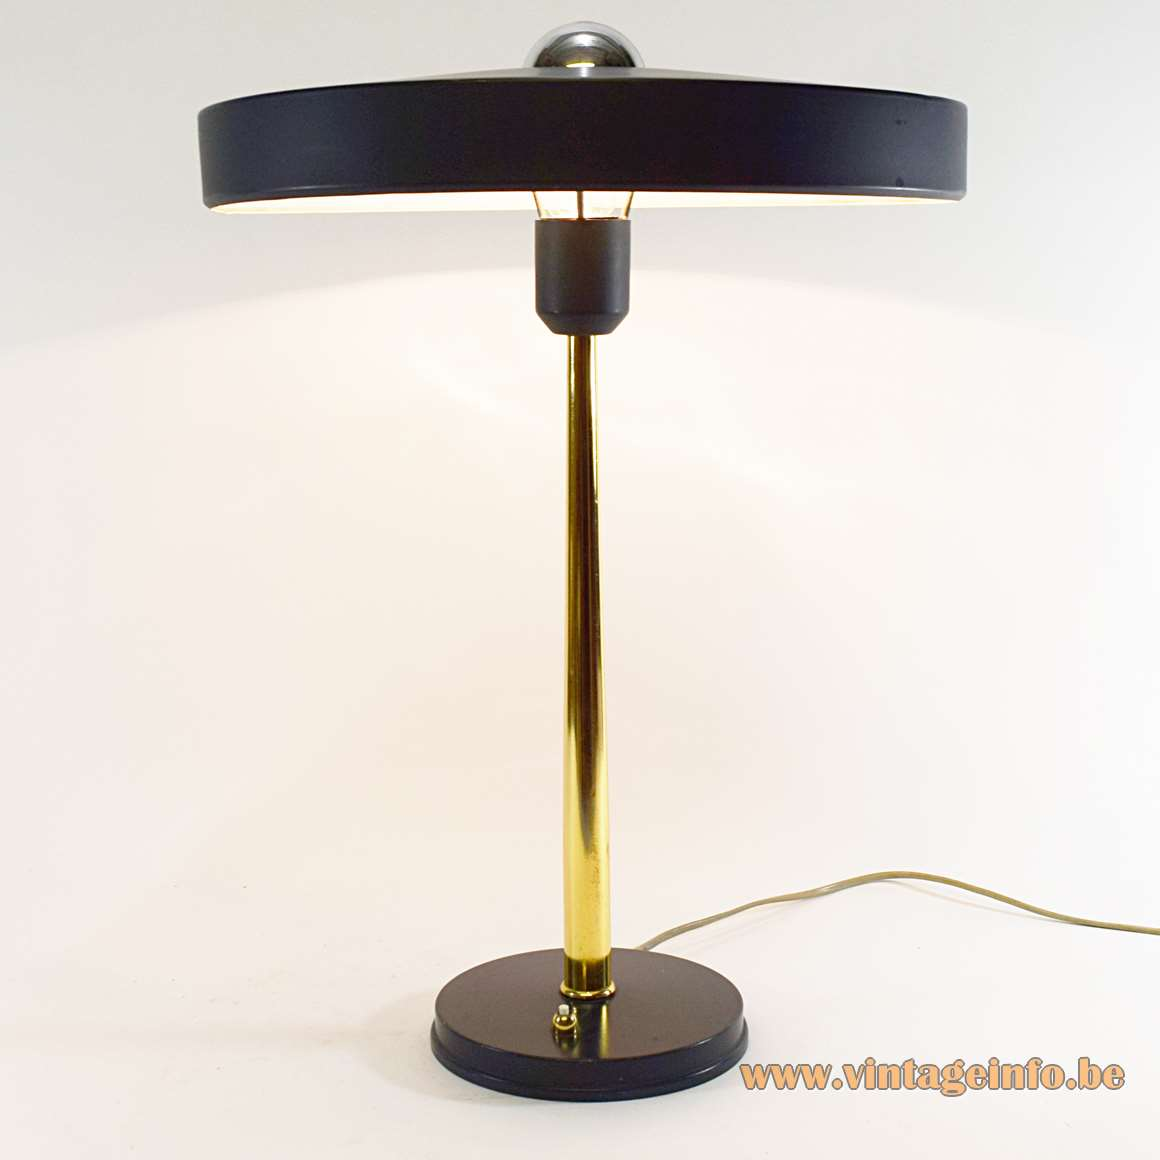 Philips desk lamp design Louis Kalff Major Timor aluminium mushroom lampshade brass rod 1960s 1970s MCM Mid-Century Modern